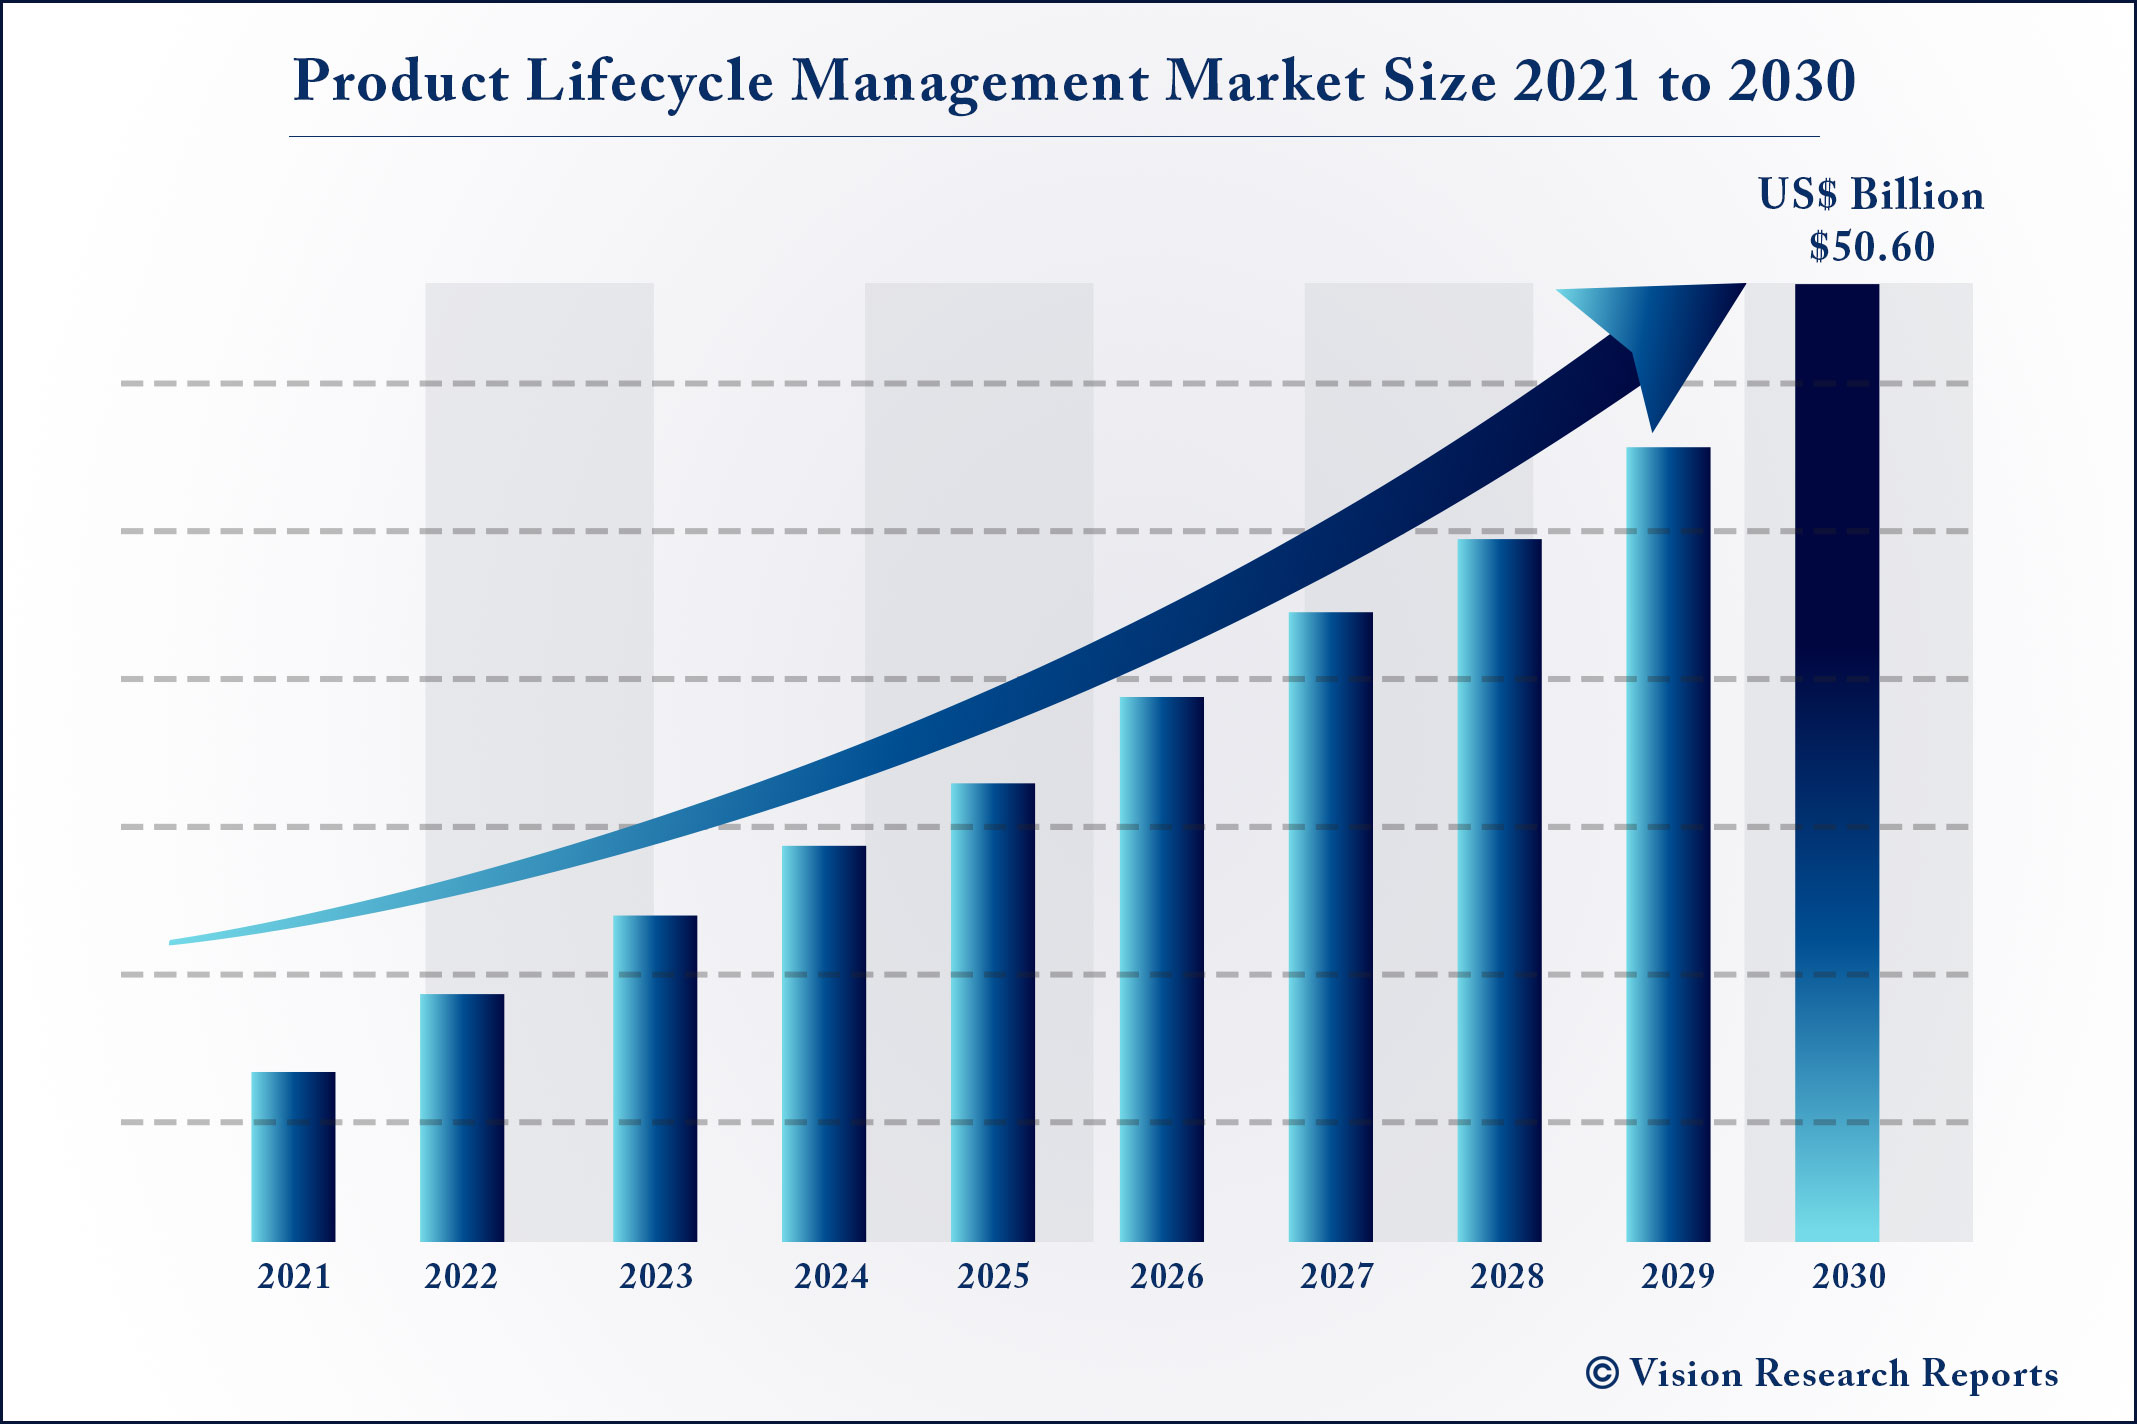 Product Lifecycle Management Market Size 2021 to 2030